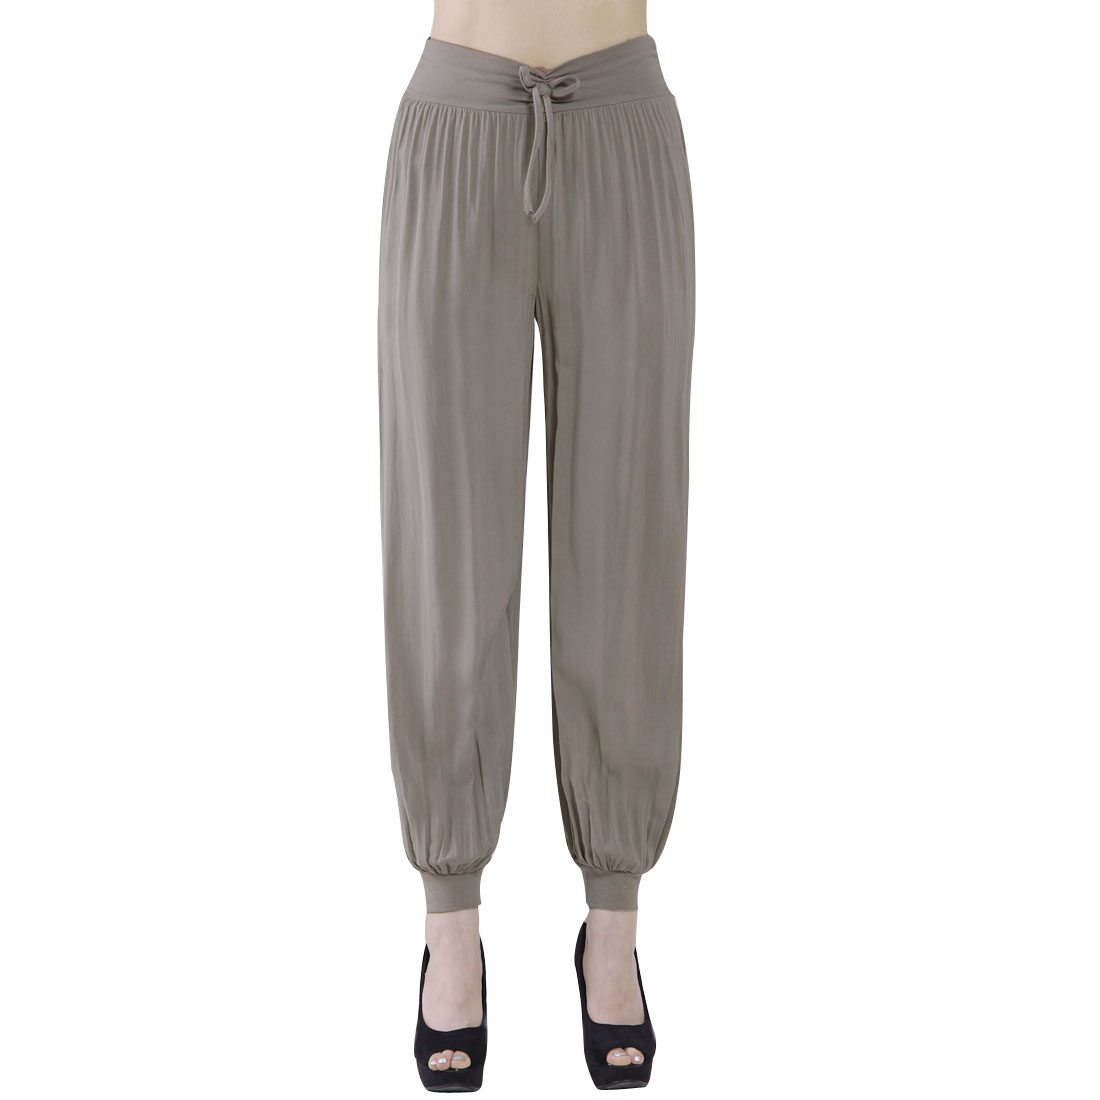 Casual Stretchy Cuff Casual Pants Trousers Khaki S for Ladies